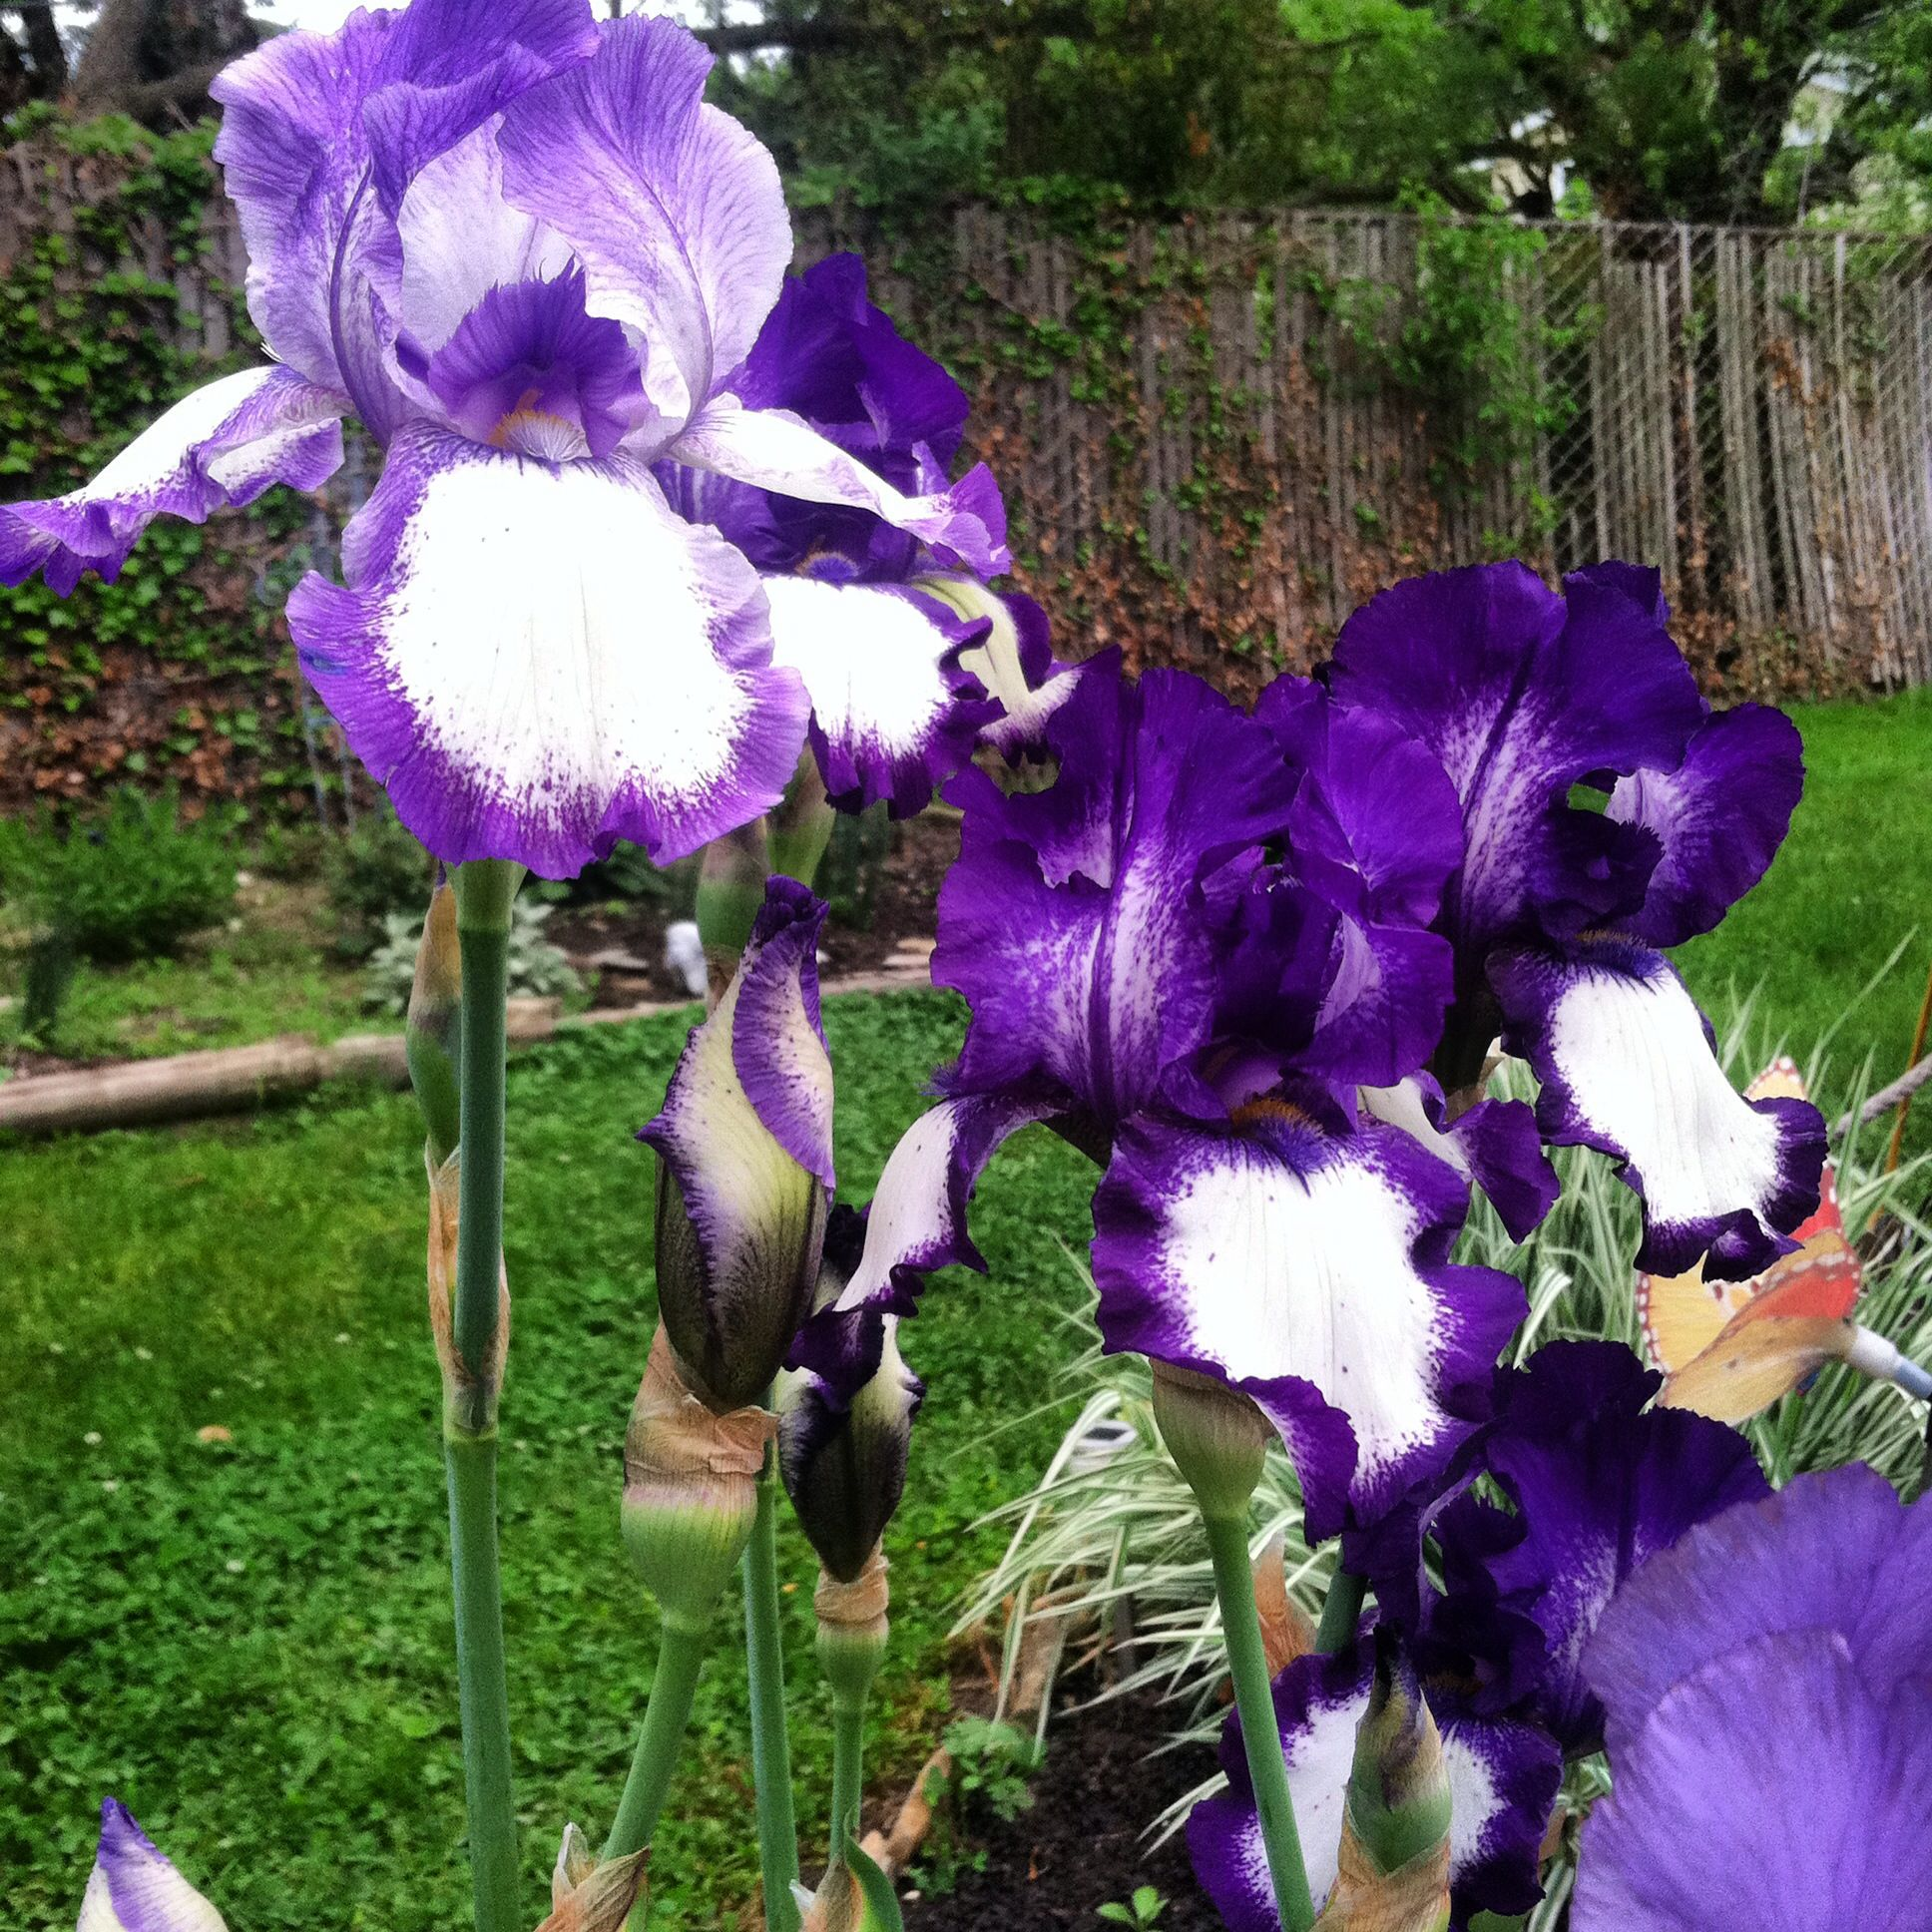 Purple and white Iris'. Not the normal kind but far more stunning and beautiful! #flowers #landscape #nature #Iris #beautiful